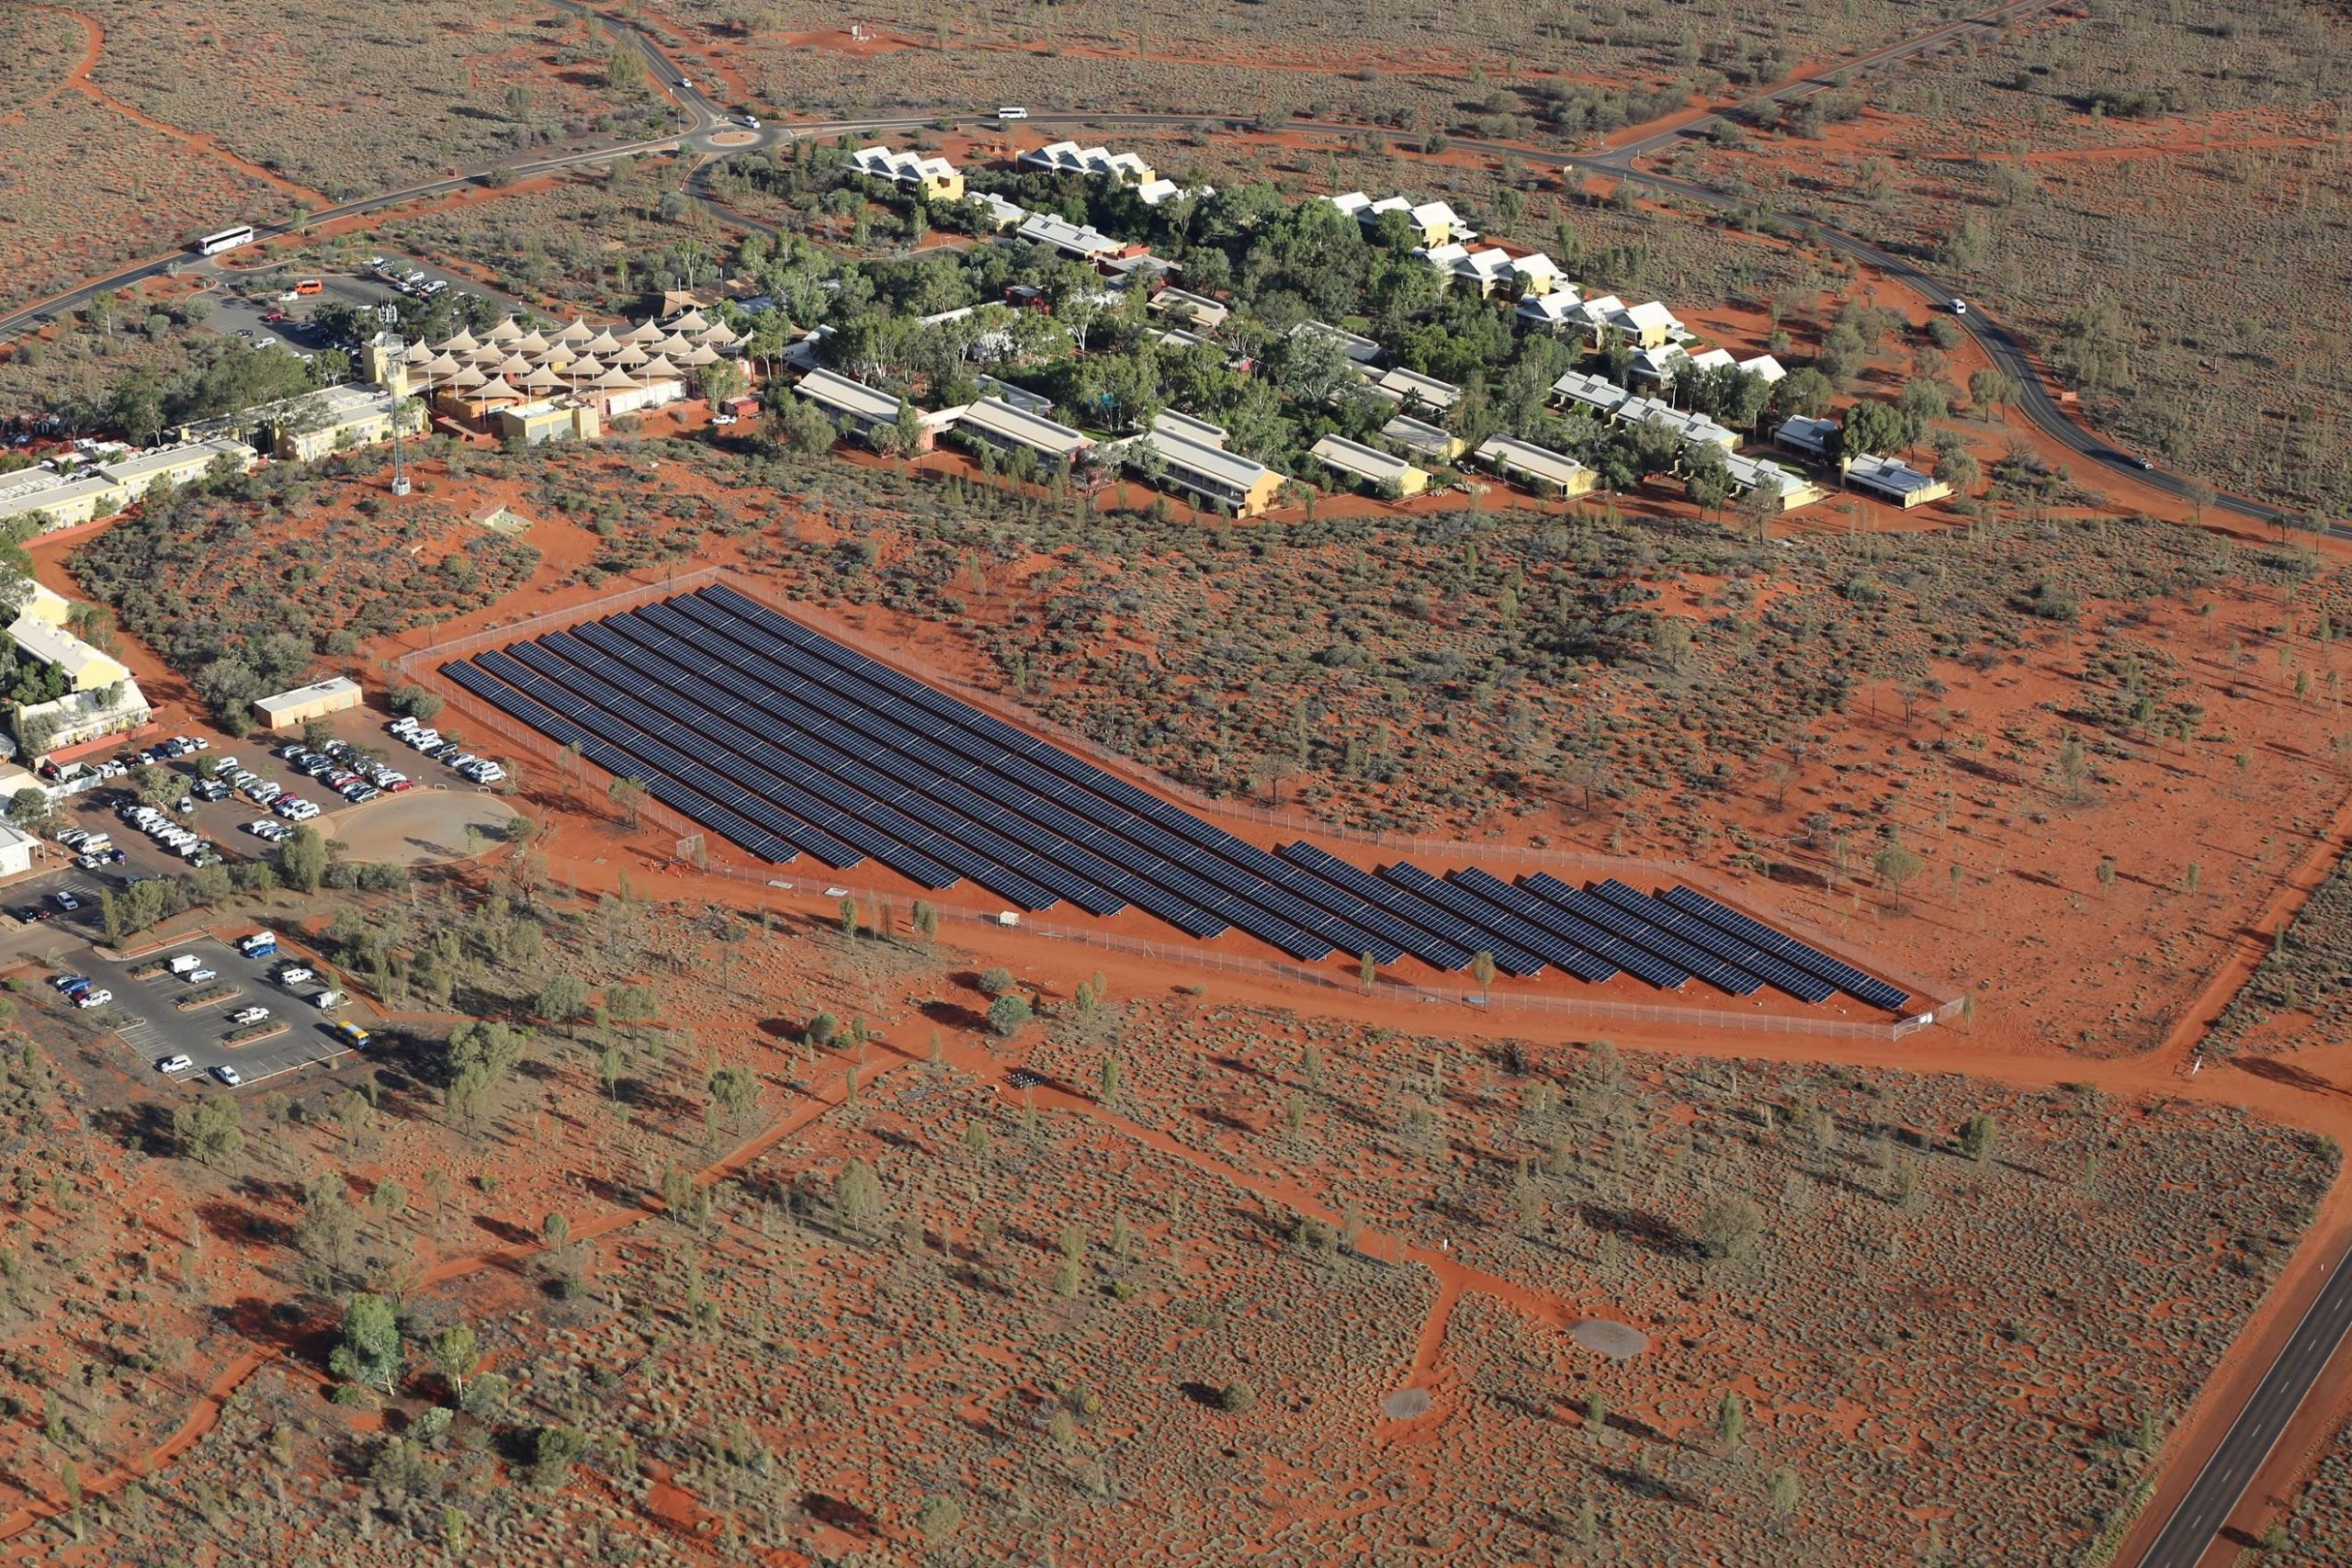 Epuron has commissioned a 1.8MW PV system at the Ayers Rock Resort near Uluru. Credit: Ayers Rock